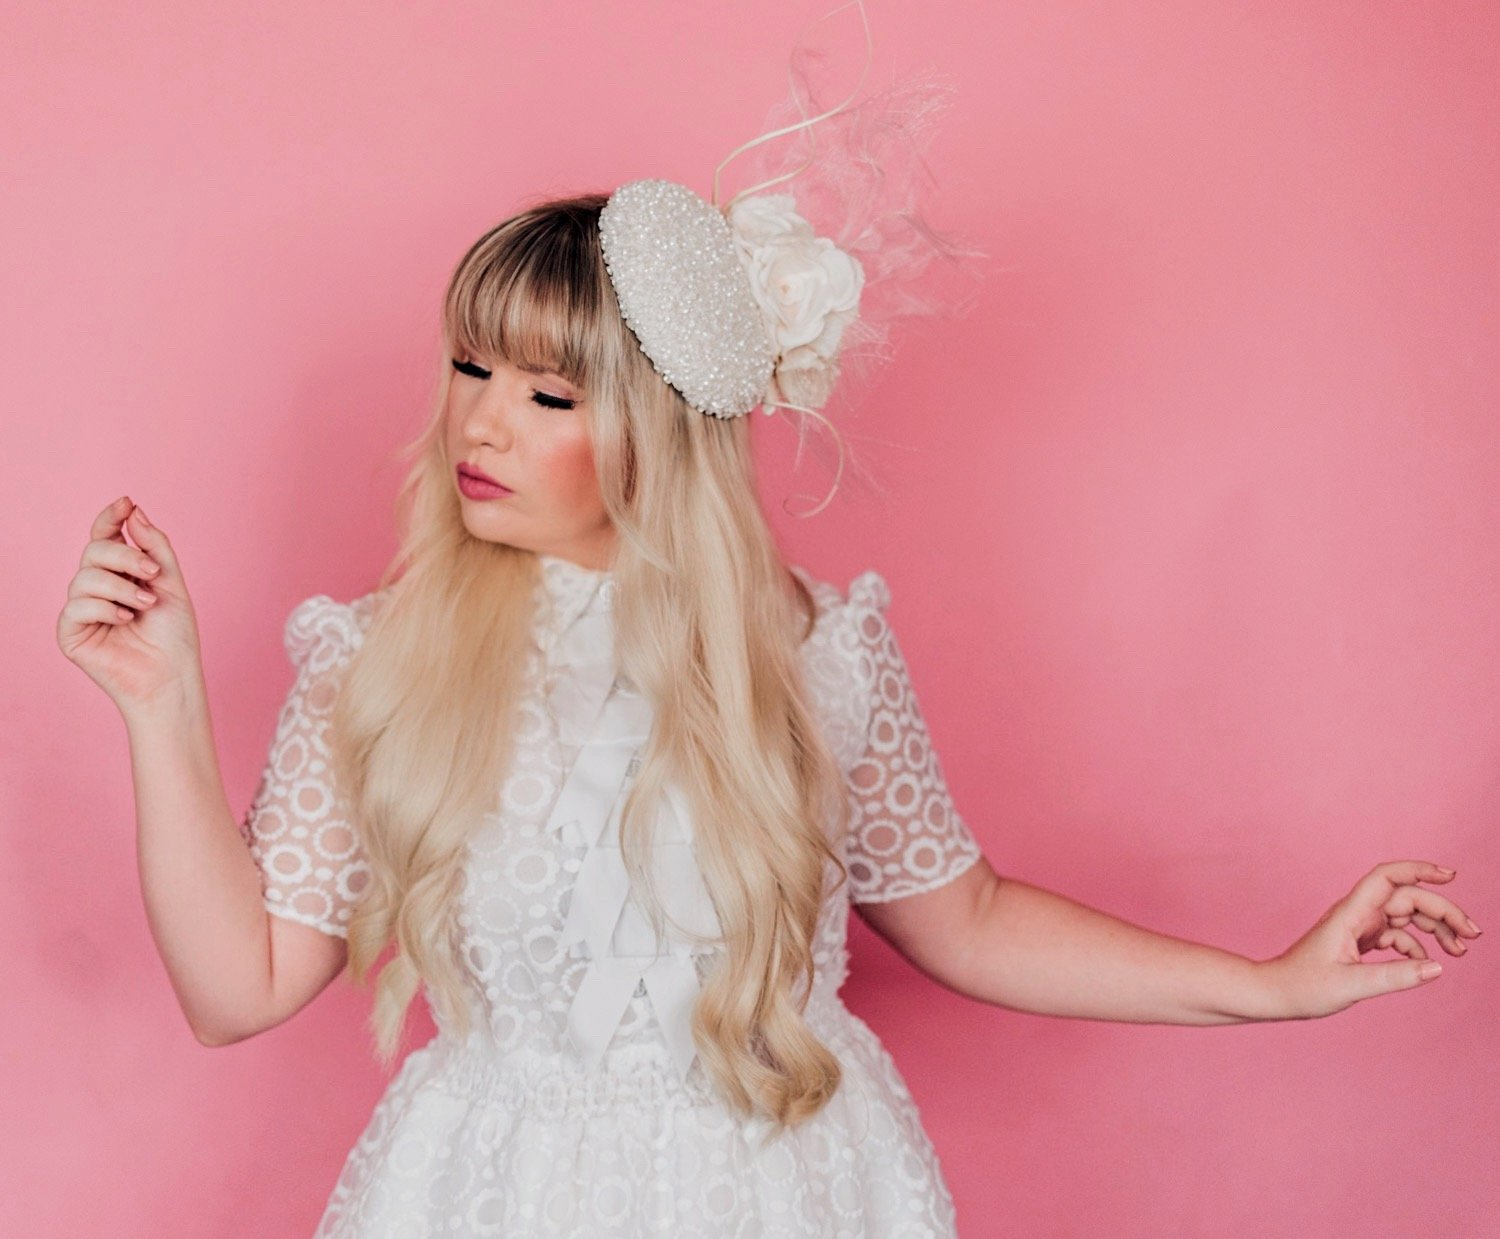 Fashion Blogger Elizabeth Hugen of Lizzie in Lace wear a white dress with bows and white floral Merve Bayindir hat